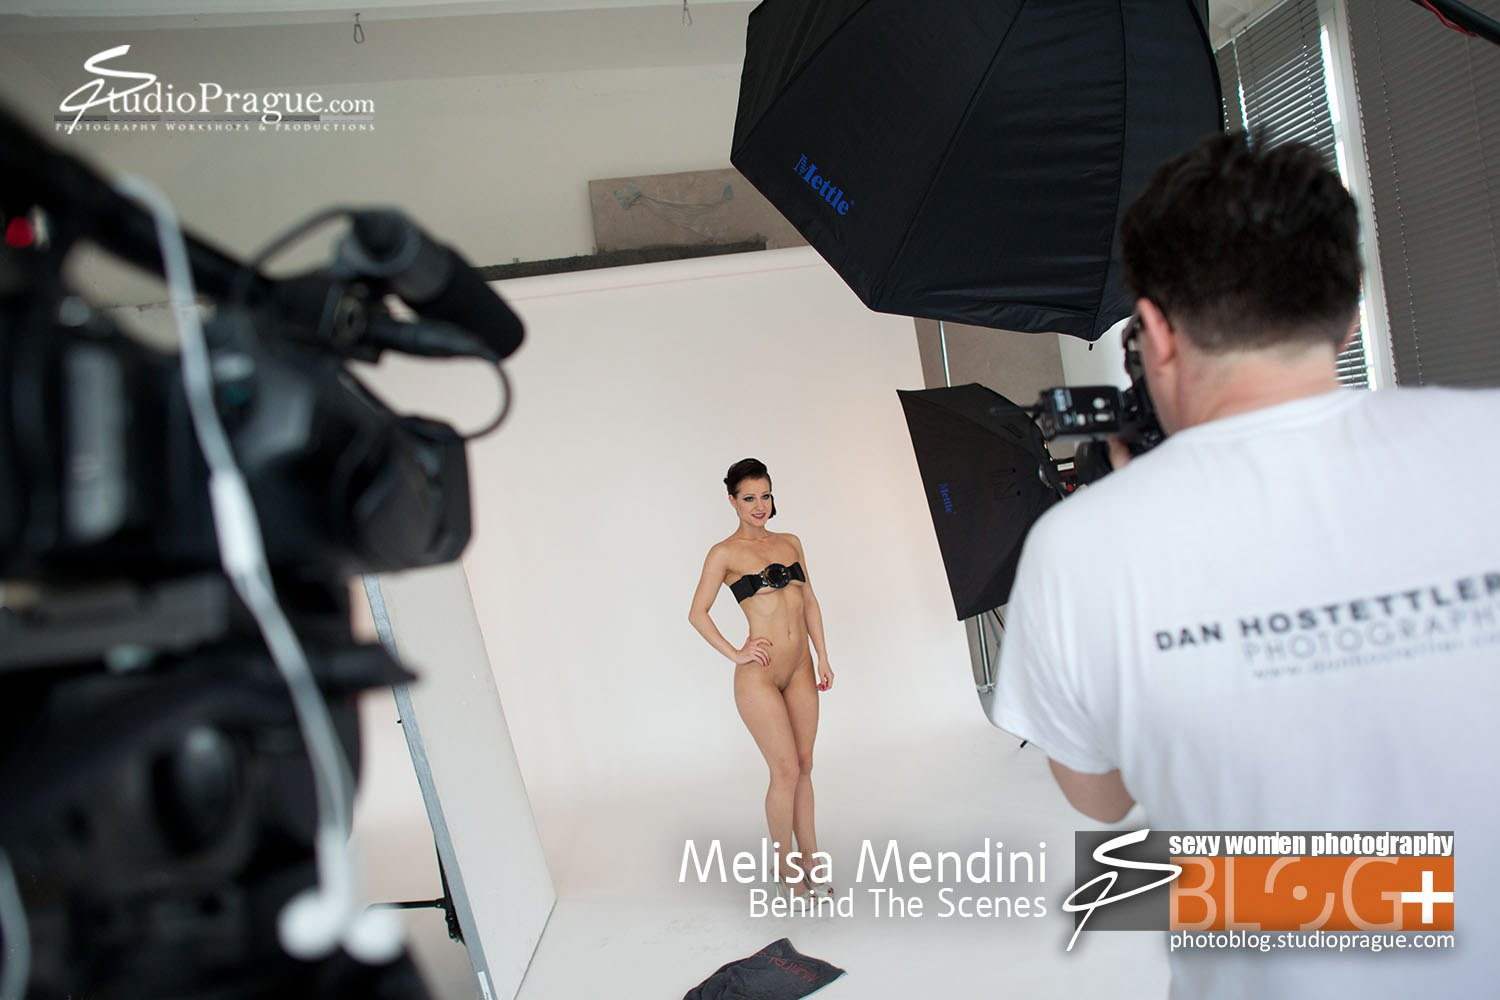 Melisa Mendini - Behind the Scenes in Photo Studio 3 - by Dan Hostettler